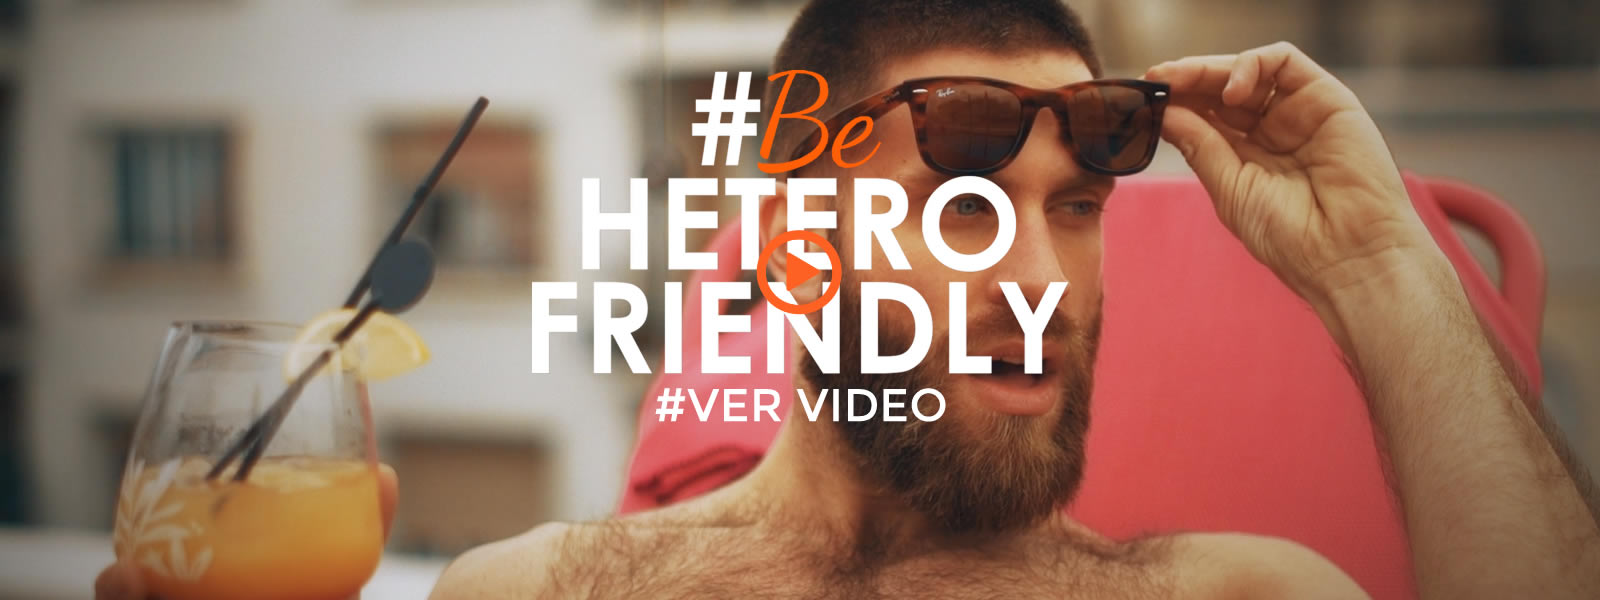 #Be Heterofriendly